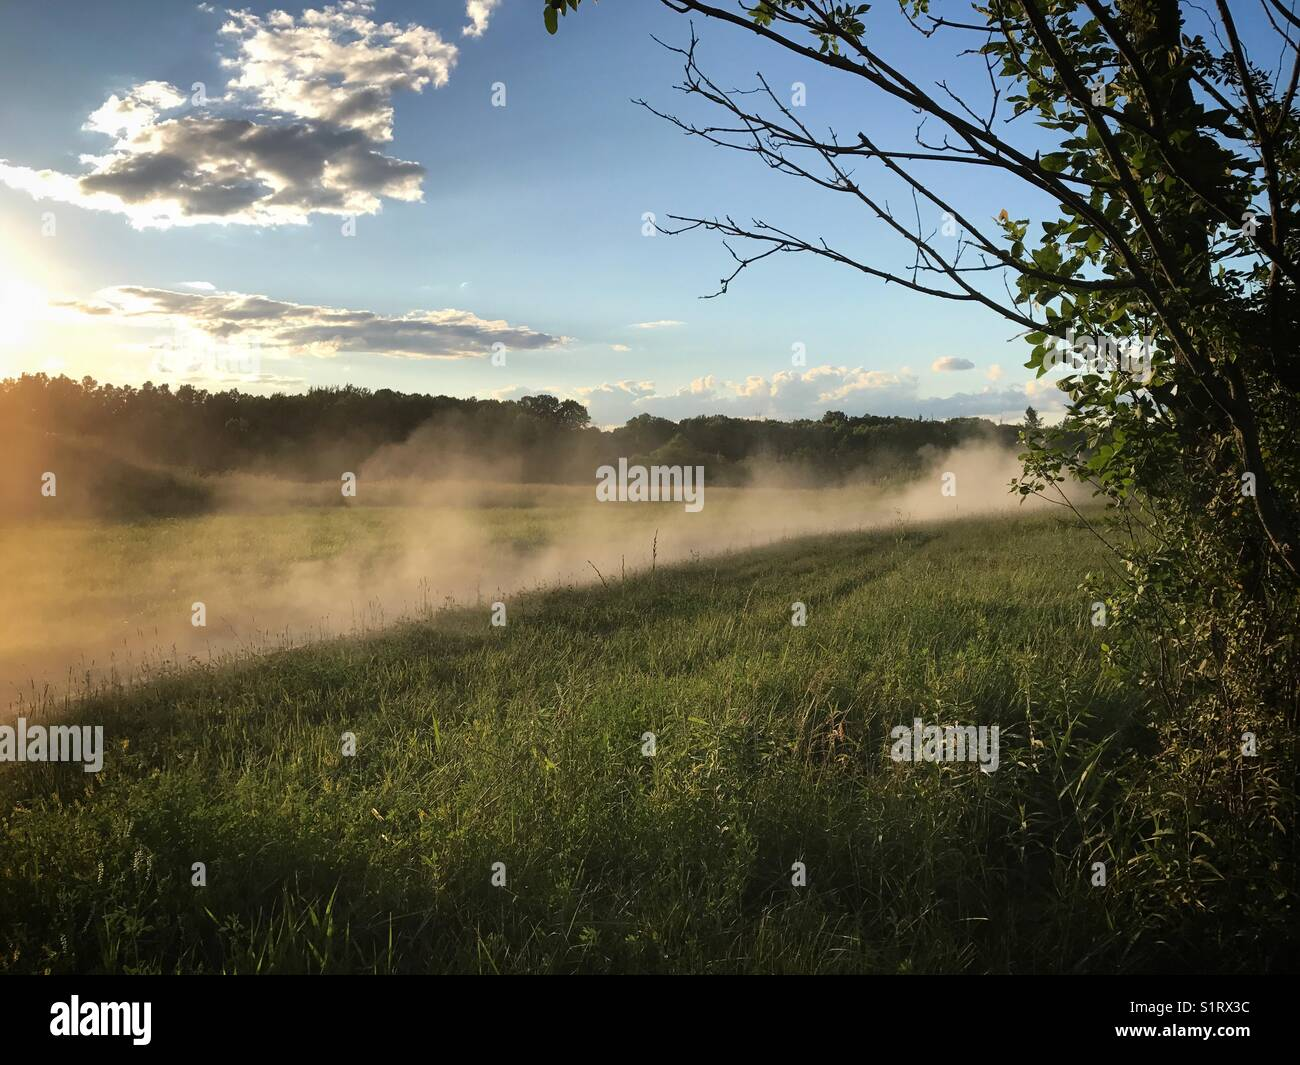 Dust cloud kicked up on a dirt bike trail. - Stock Image